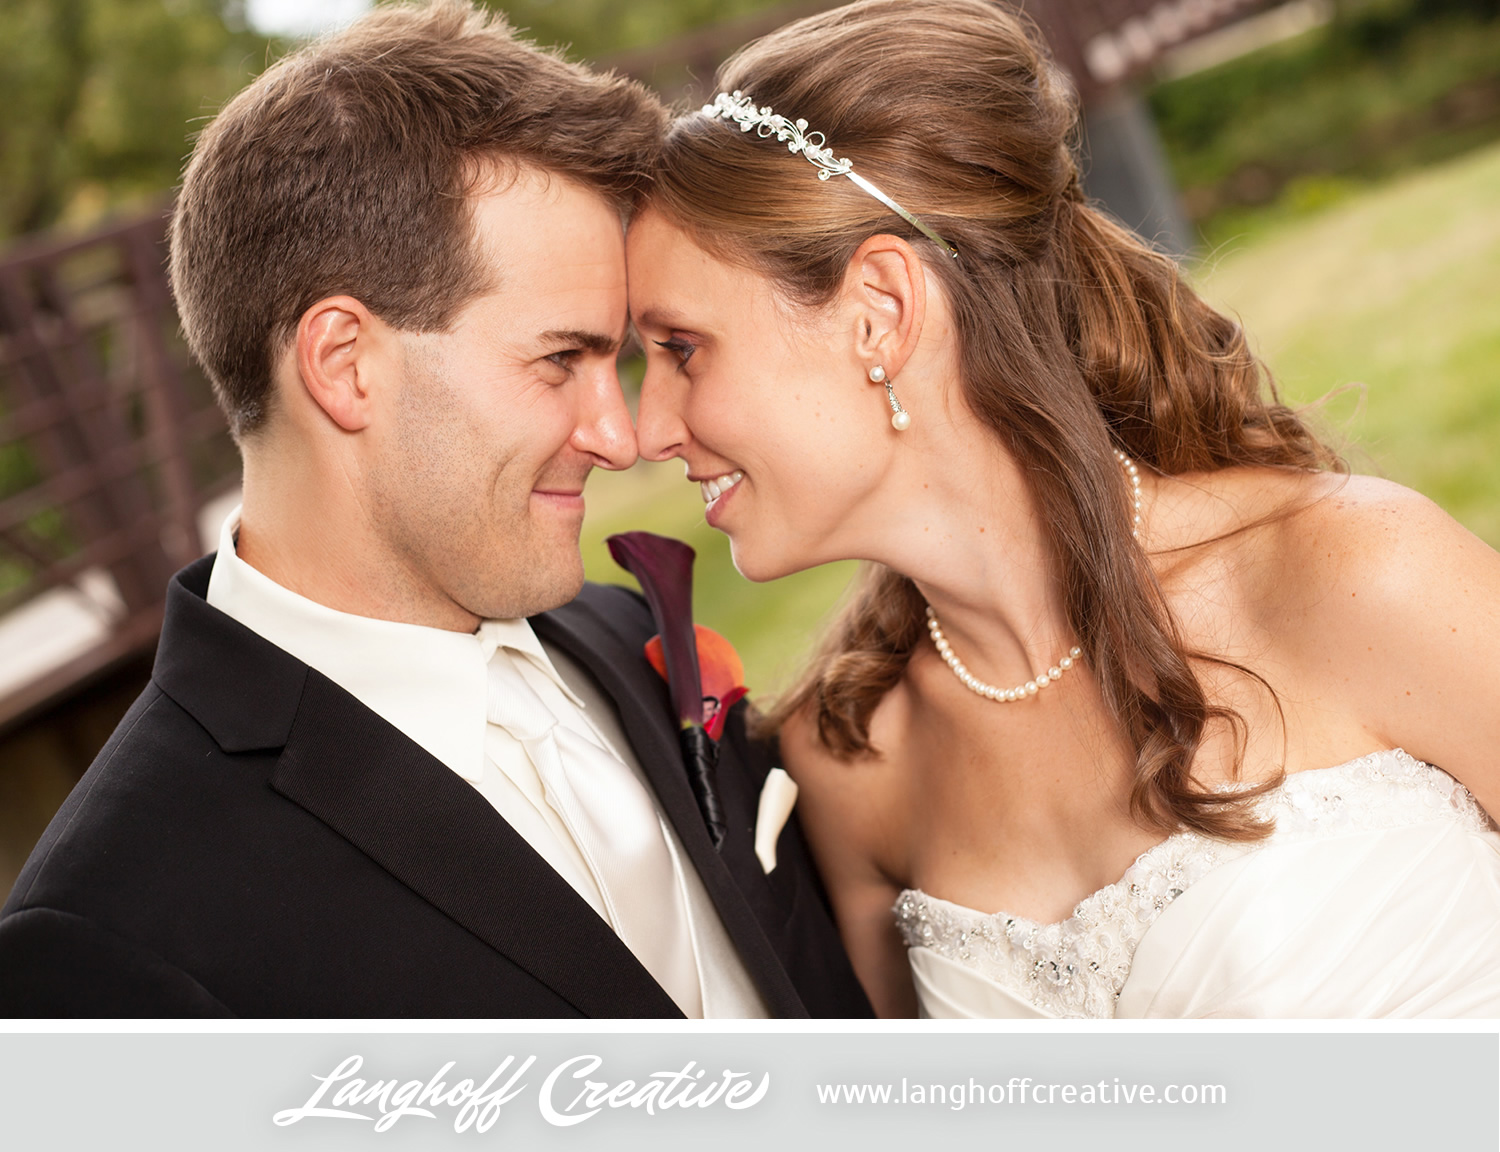 PlainfieldWedding-2013-LanghoffCreative-MattErin-9-photo.jpg